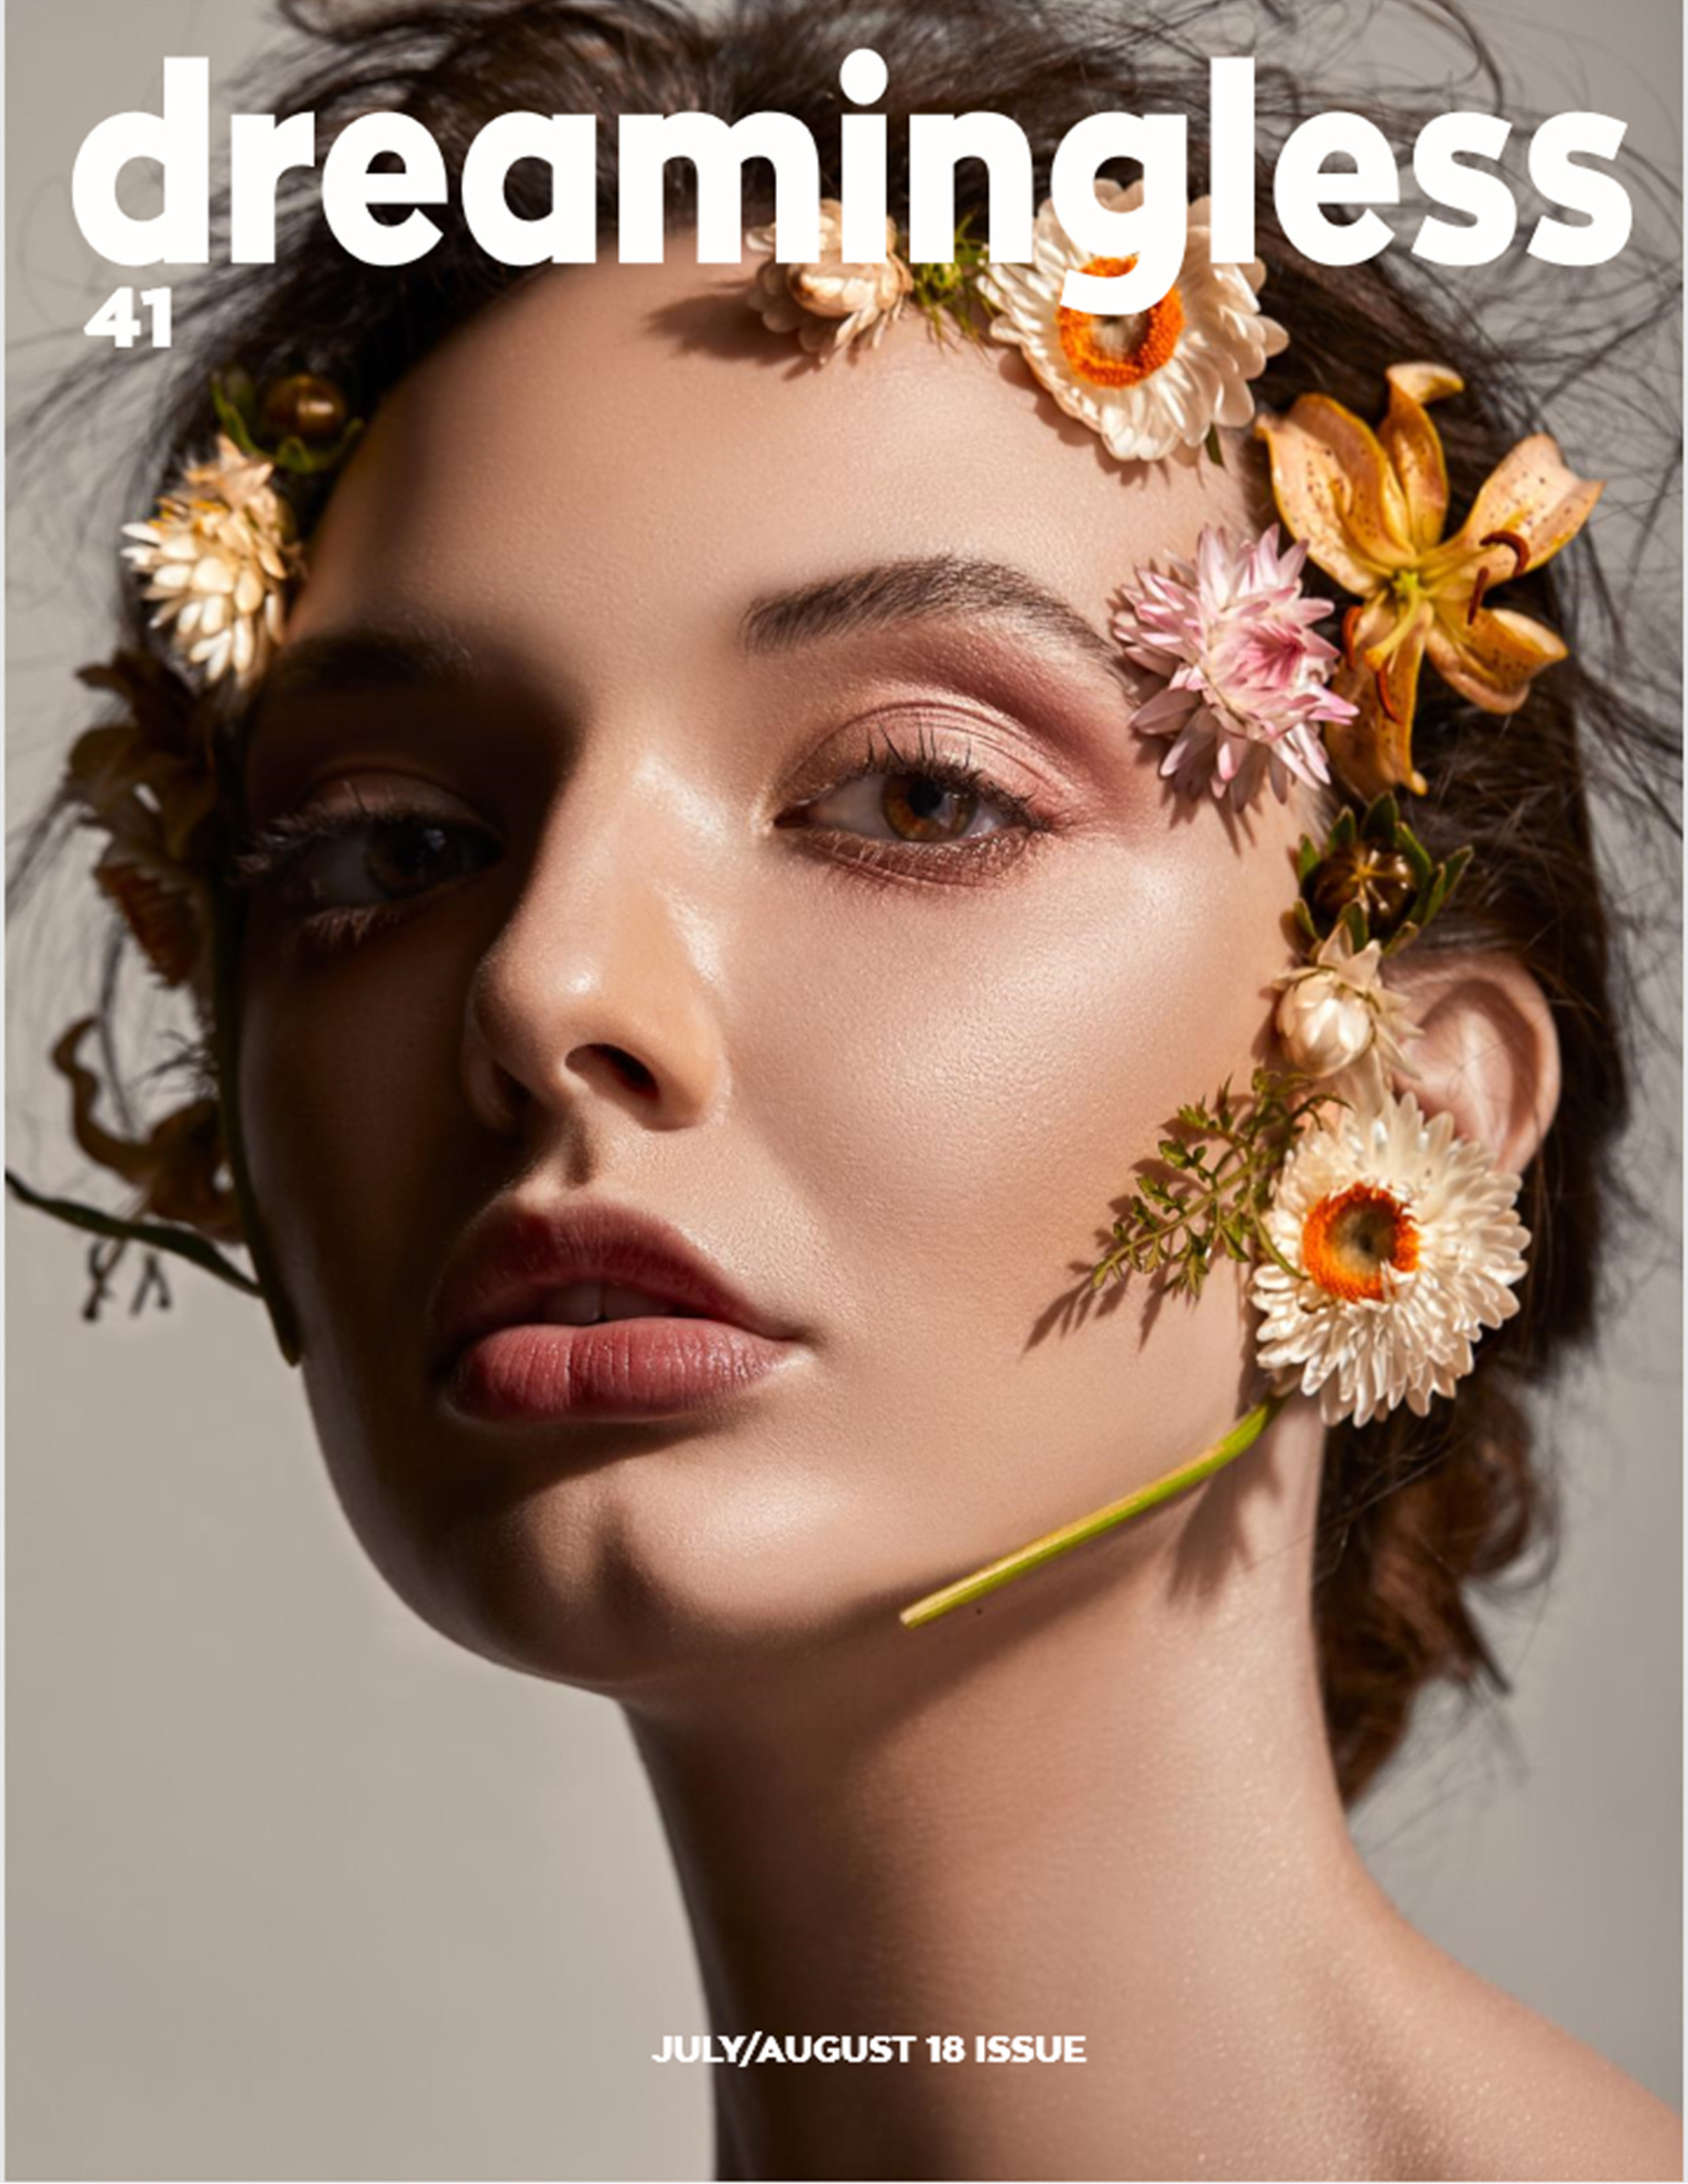 A Flower Girl - Front Cover and Editorial for Dreamingless Magazine Vol. 41Photographer & Retouching: Luis Martinez (IG: @luis_martinez93)HMUA: Rocio Vielma (IG: @vivemakeup)Styling & Creative Direction: Patricio Rivera (IG: @twelvethirtyfourflowers)Model: Alexandria Bryant (IG: @alexeatsplants) from The Kim Dawson Agency